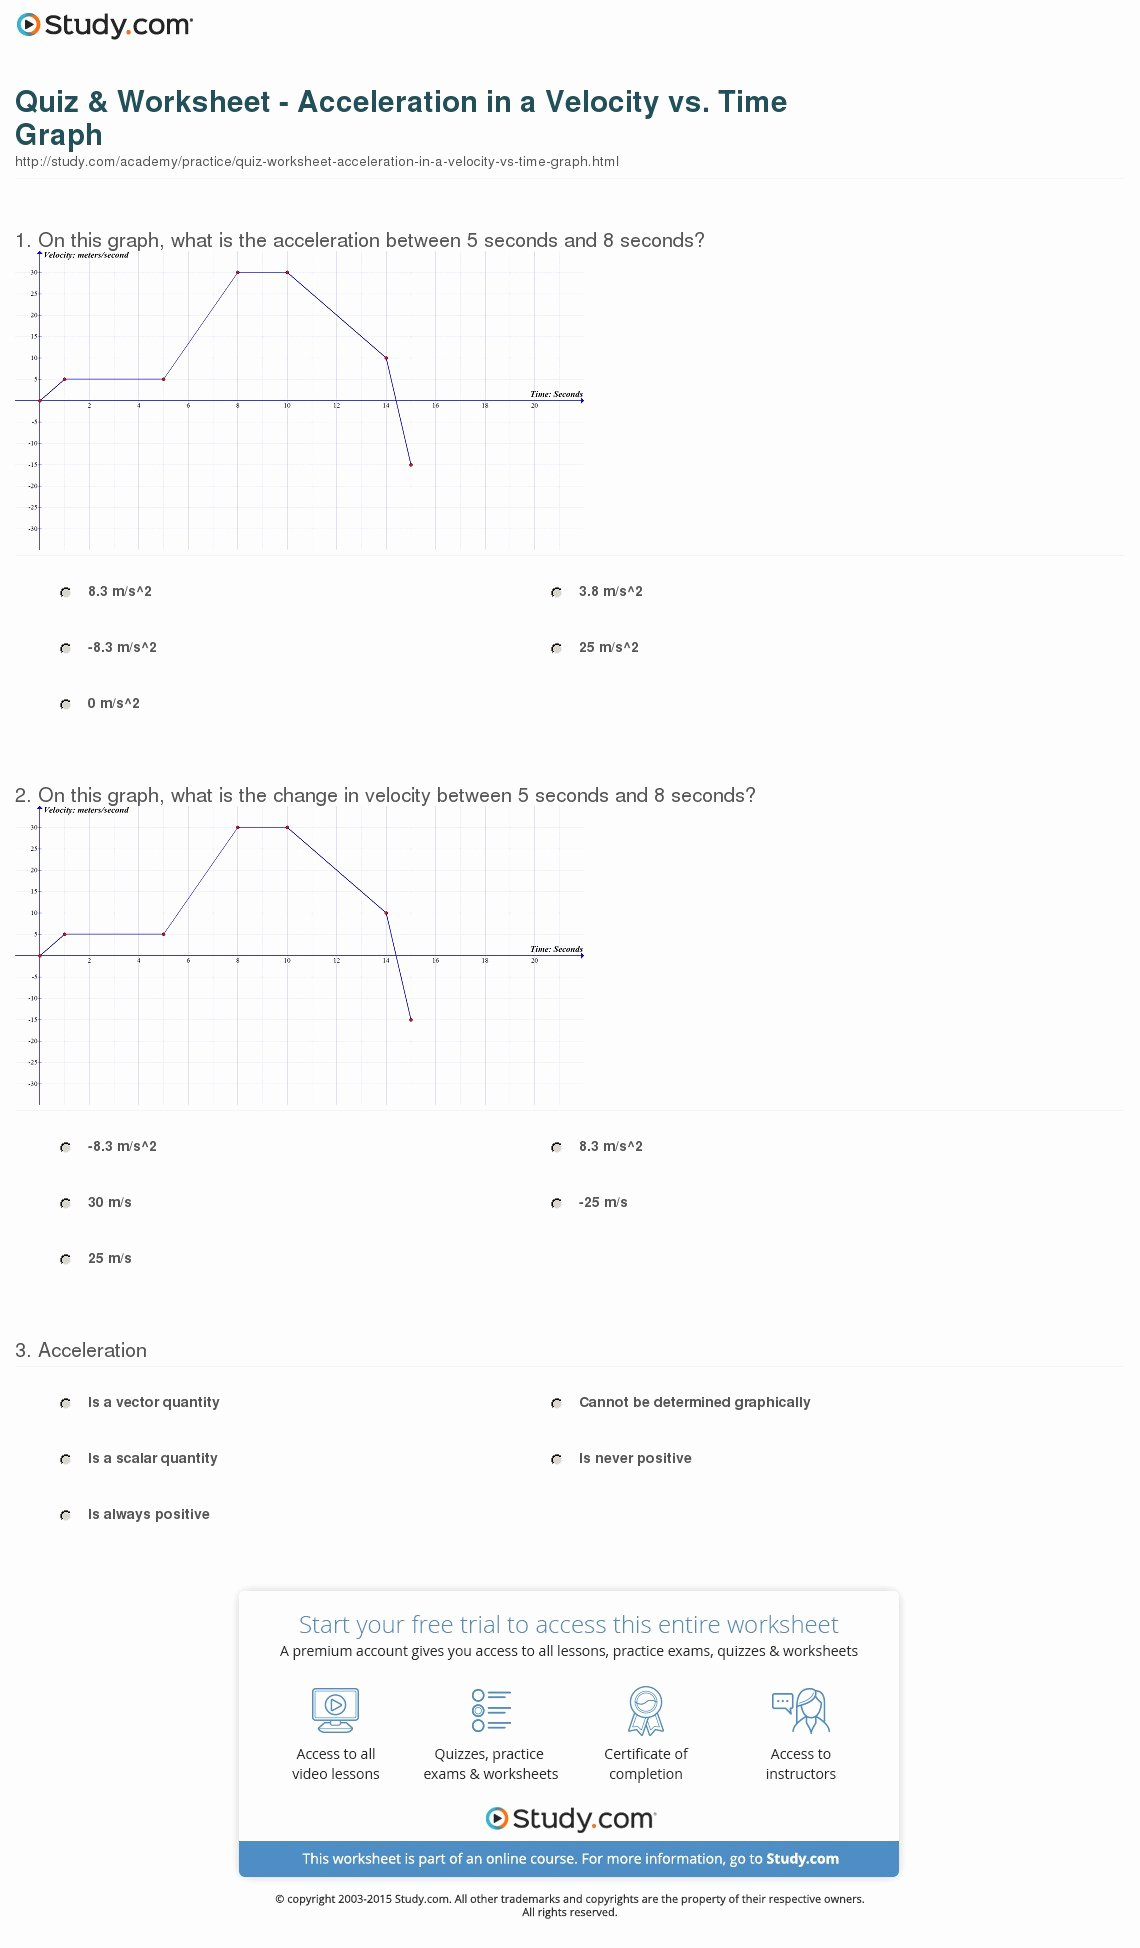 Acceleration Worksheet with Answers Awesome Quiz & Worksheet Acceleration In A Velocity Vs Time